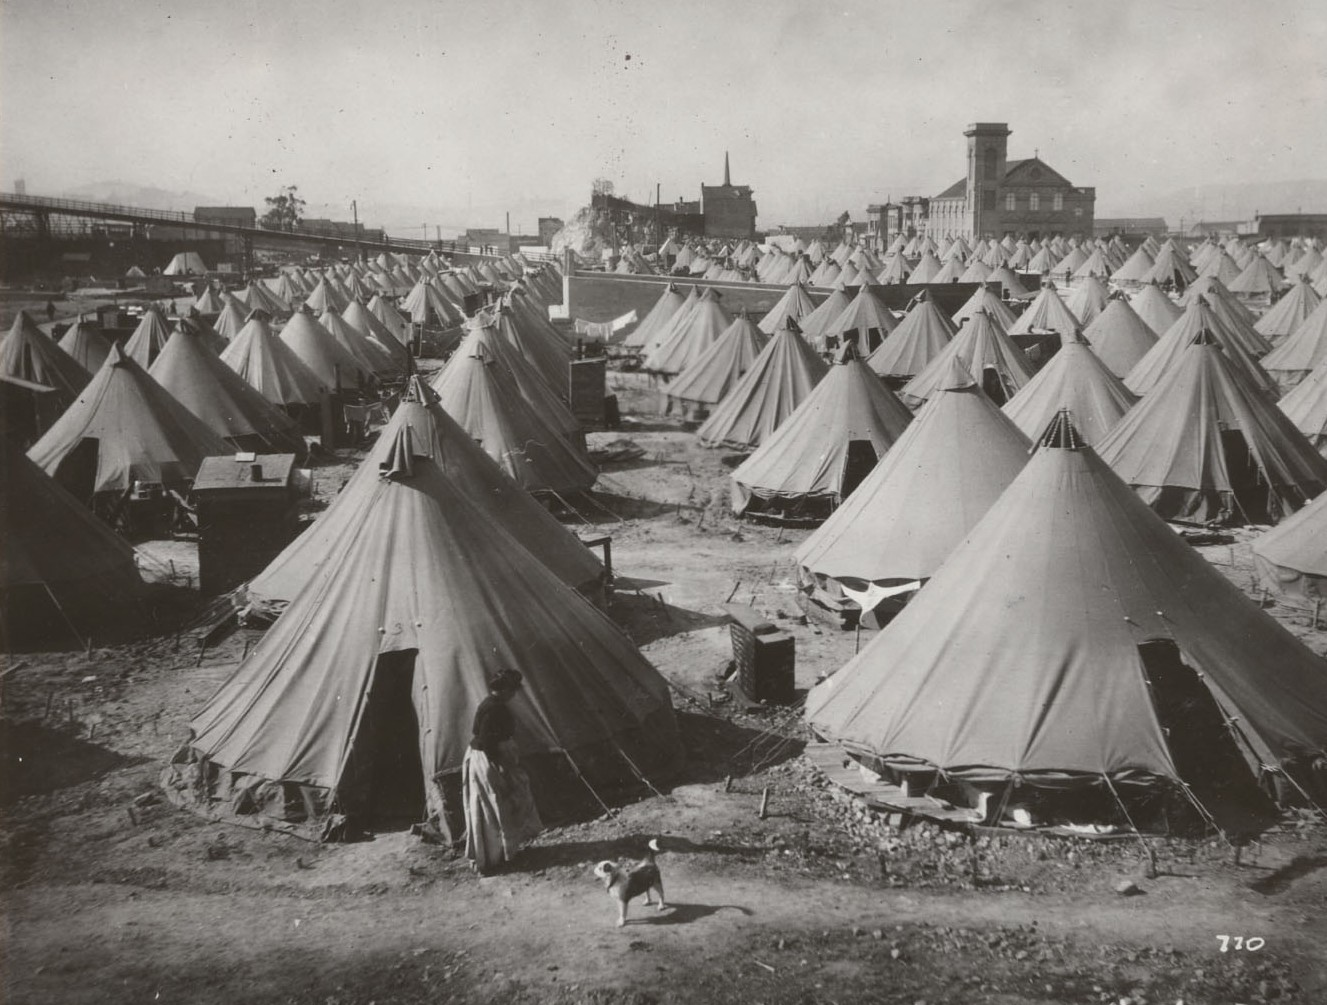 Tents at refugee camp. California State Library, California History Room